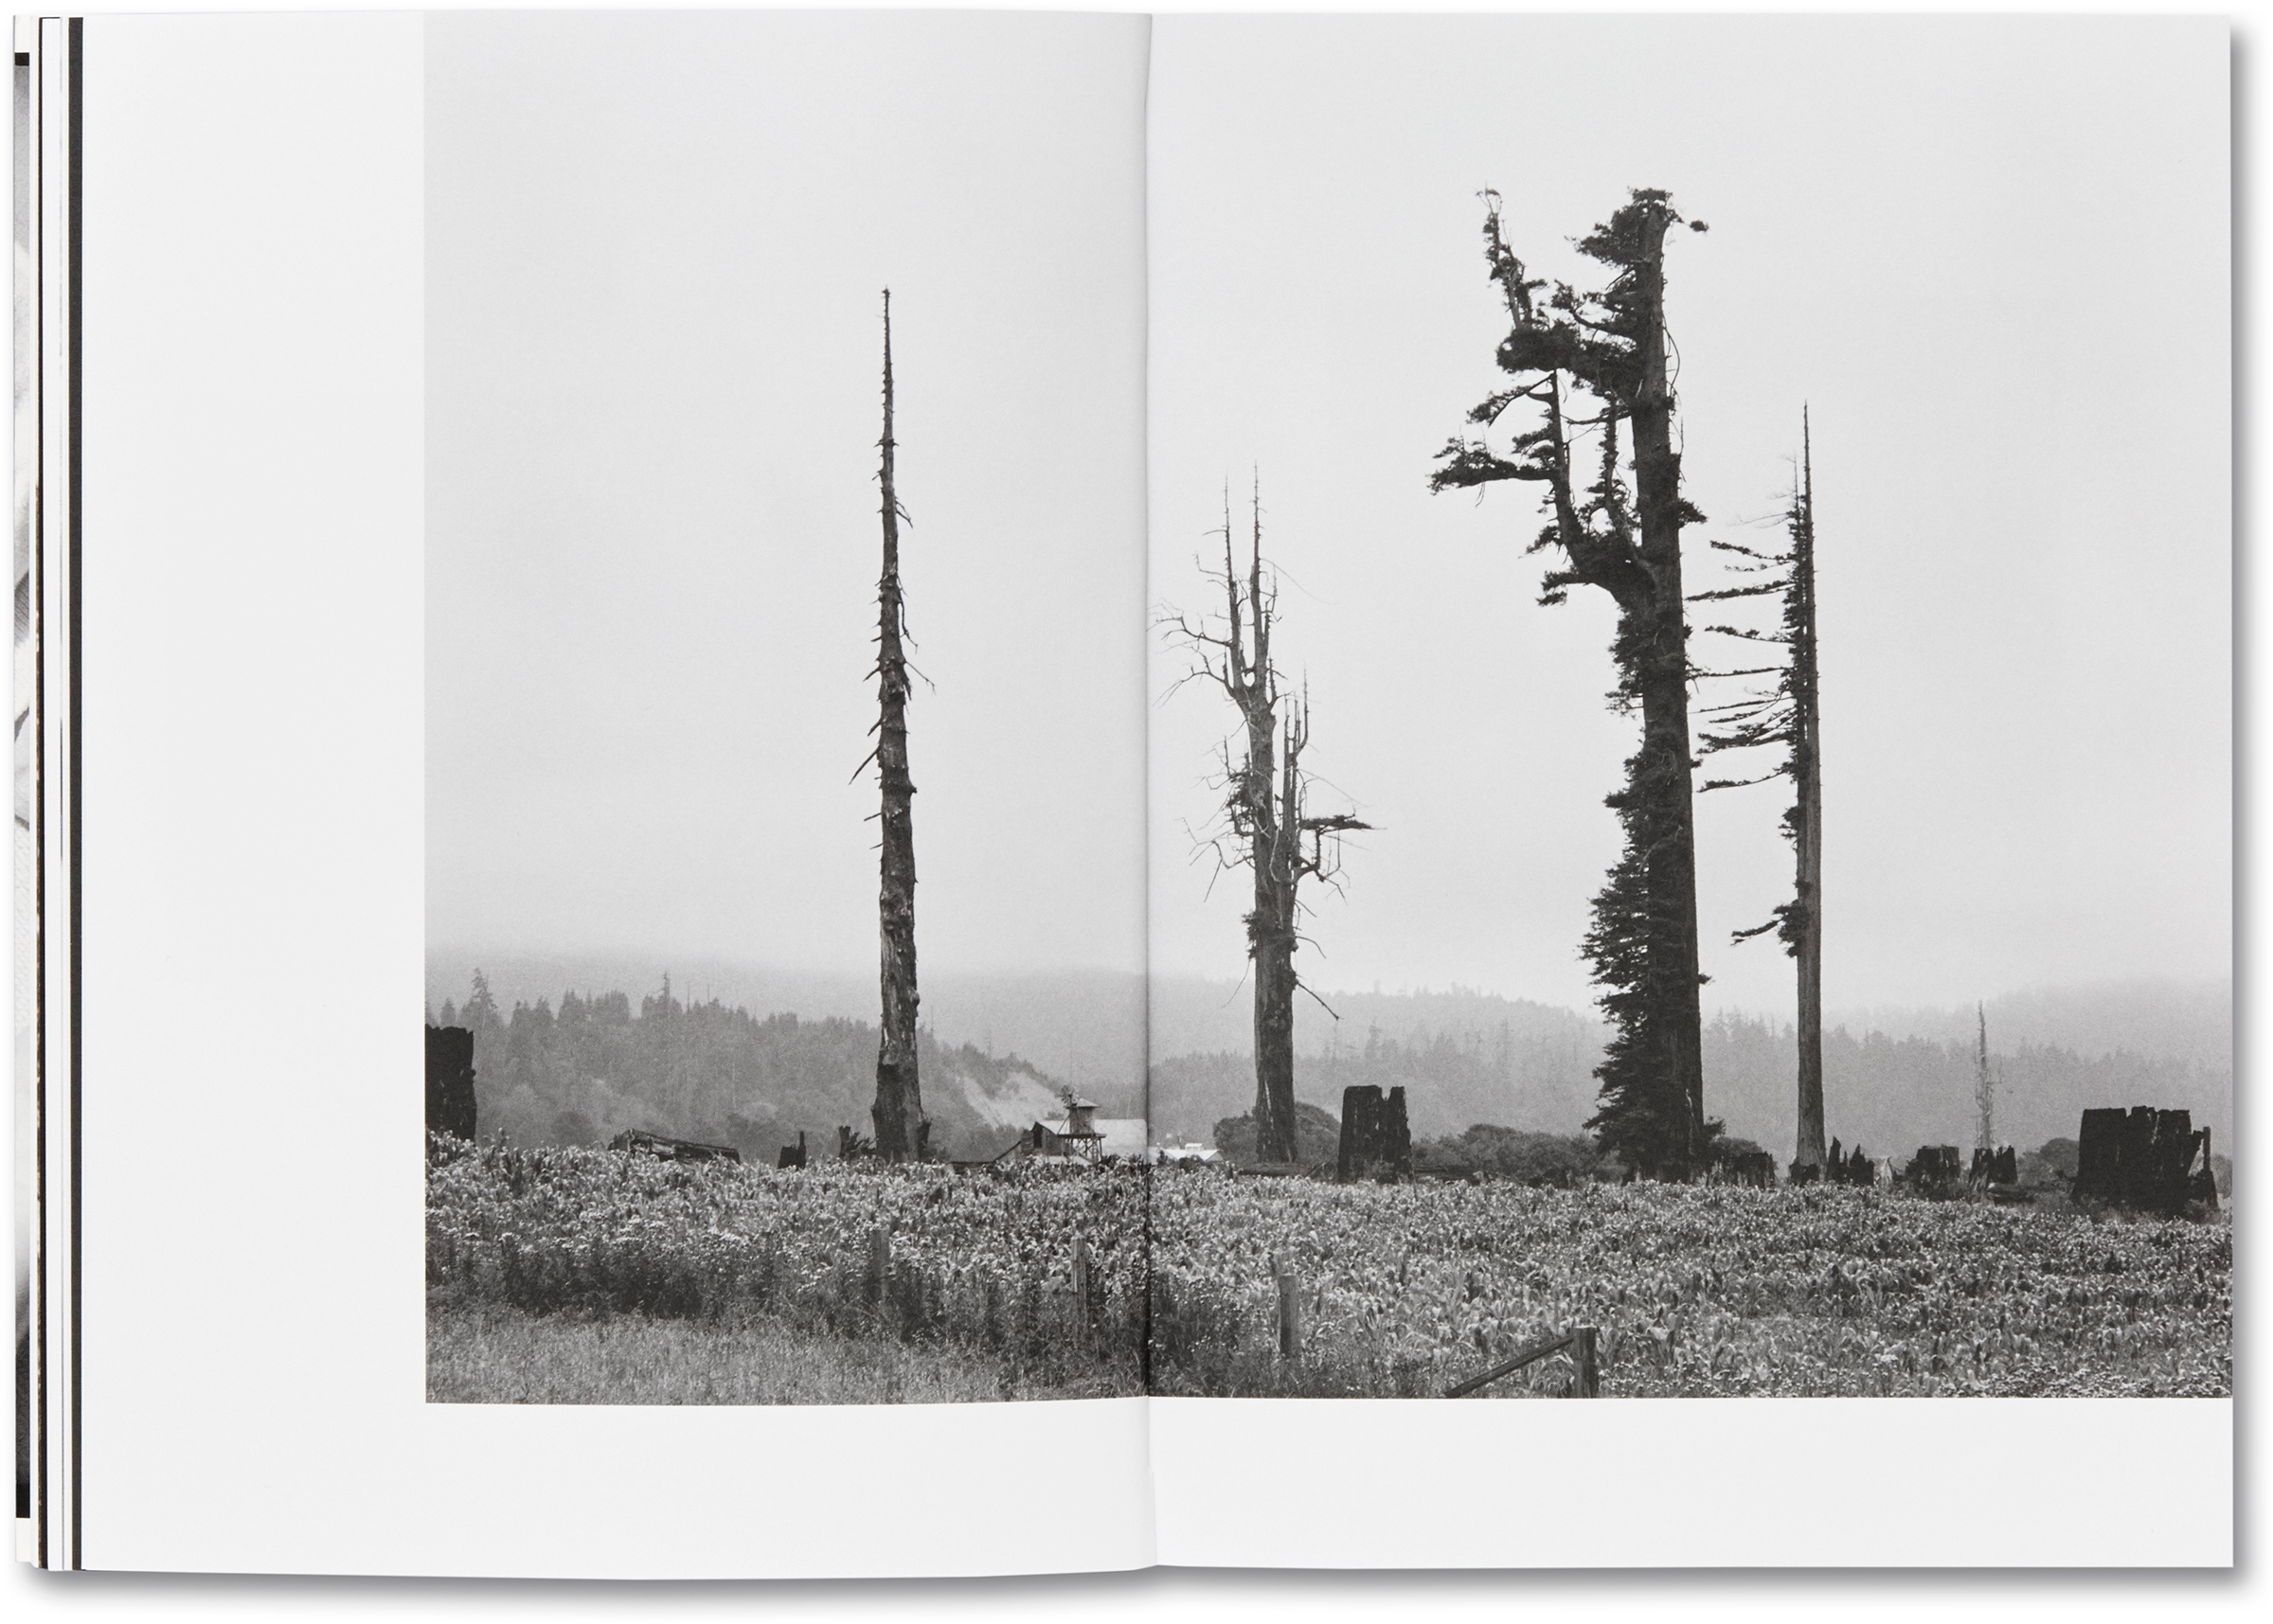 Redwood trees and stumps on Redwood Highway, Scotia, Calif., 1939.